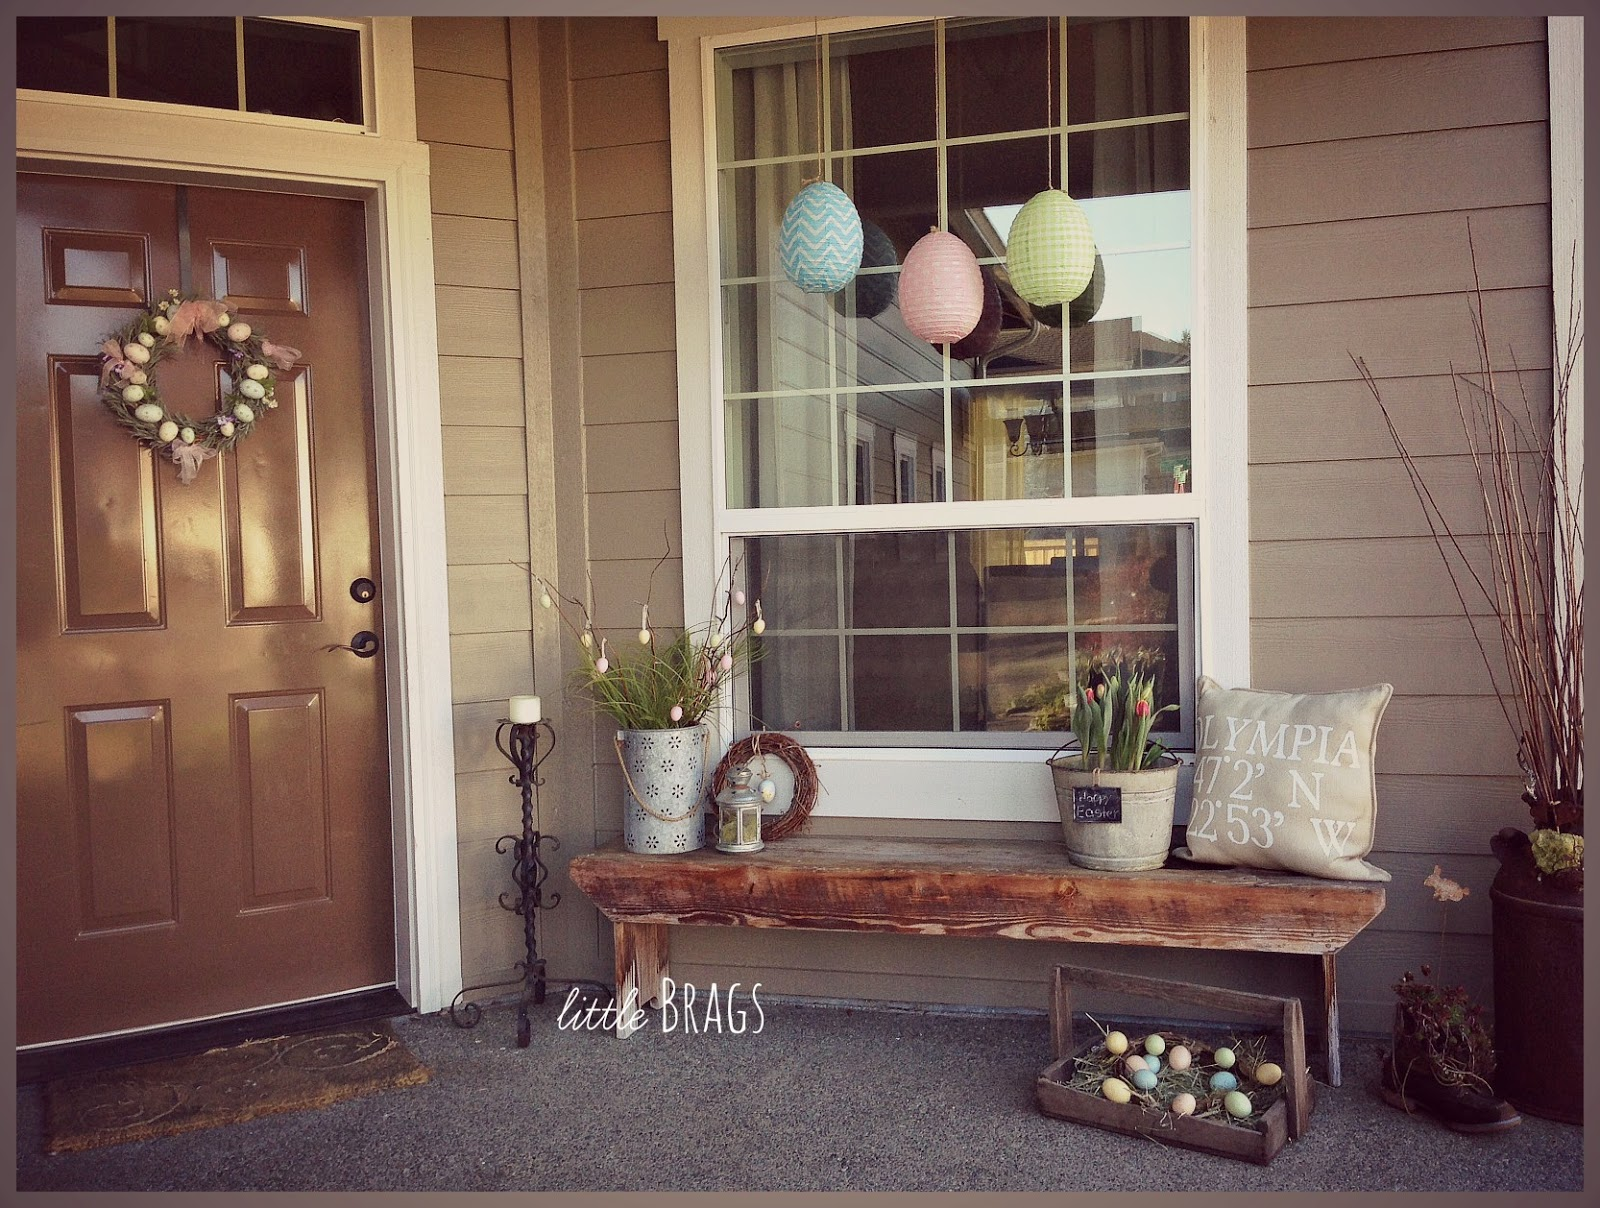 little brags  a little easter decorating on the front porch